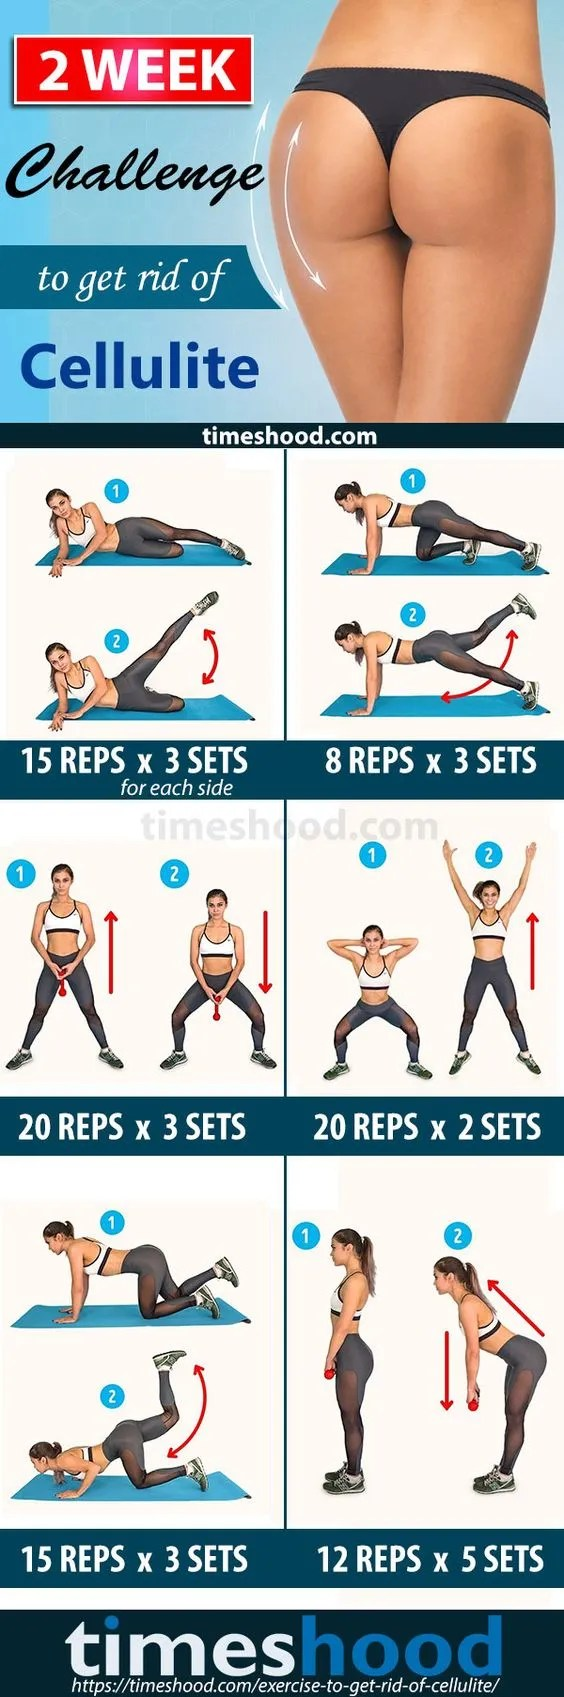 2-Week Cellulite Challenge. How to get rid of cellulite on buttocks and  thighs fast? 6 Exercise, 14